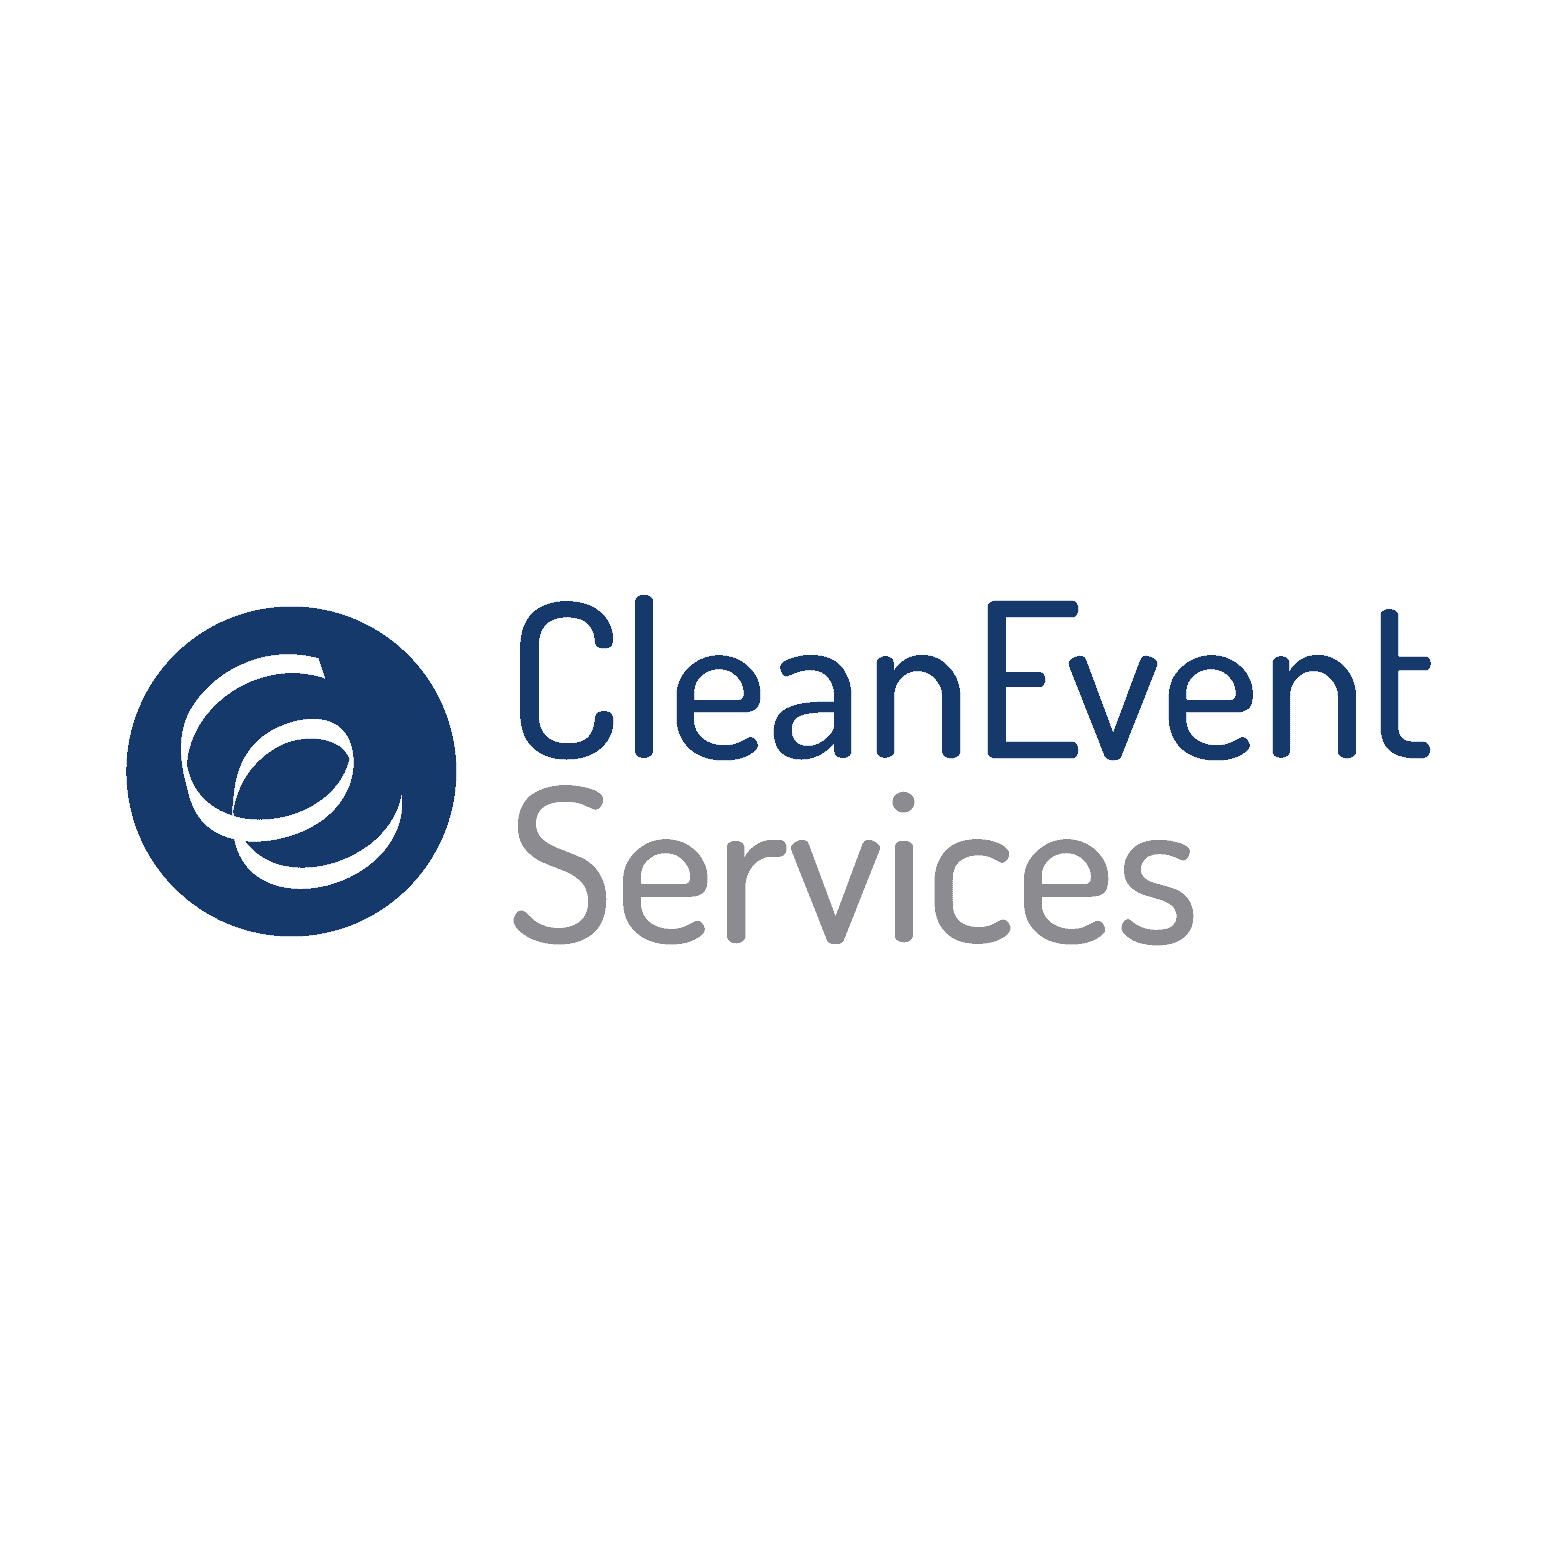 Clean-Event-Services-color